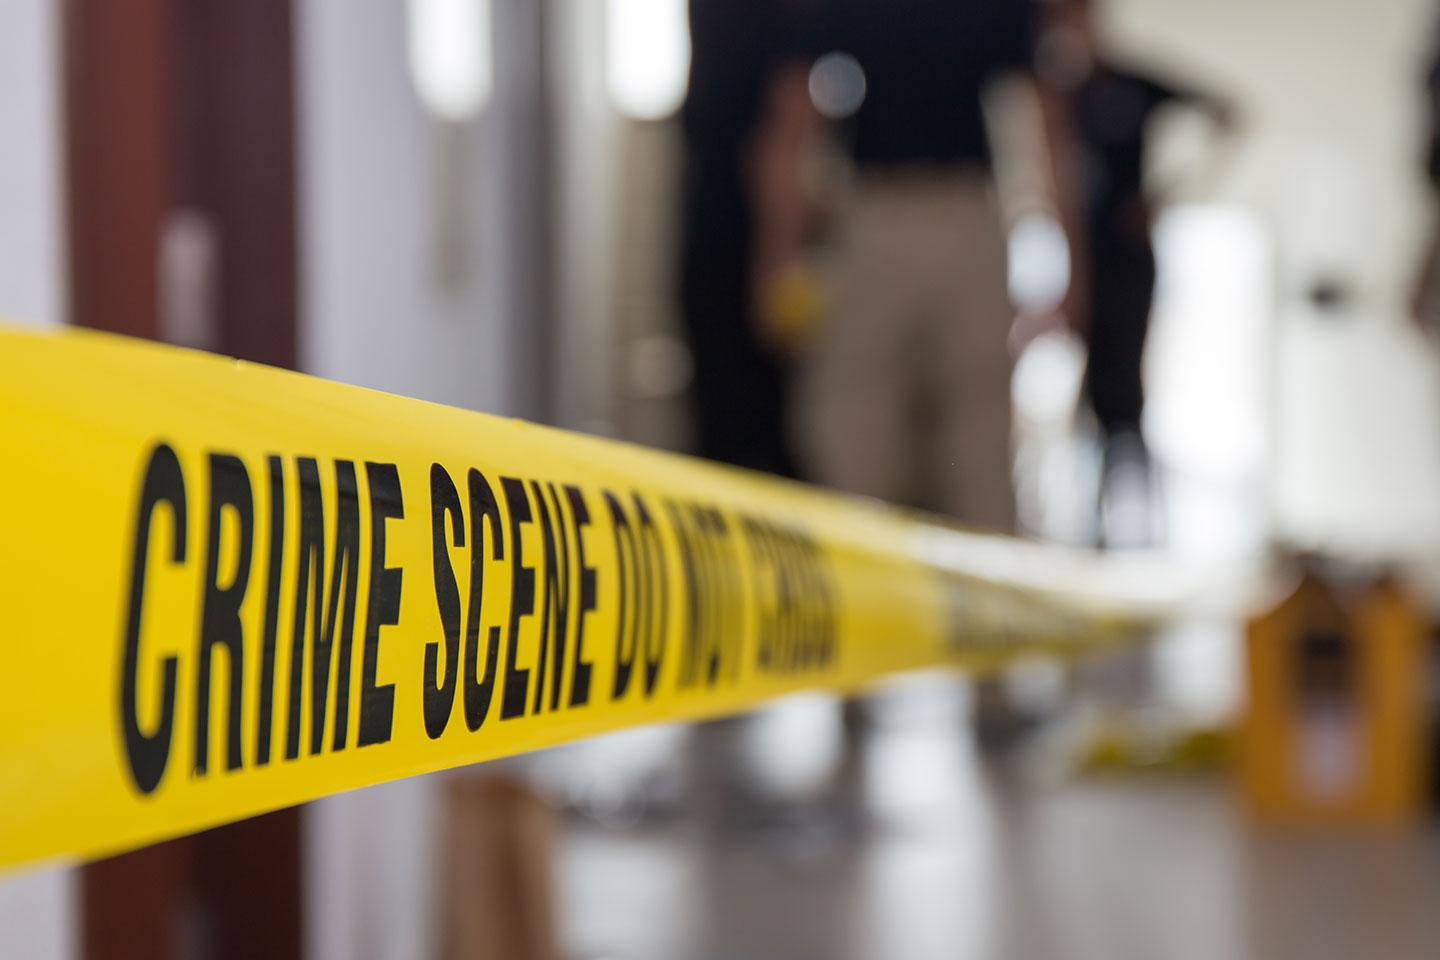 A crime scene with police tape